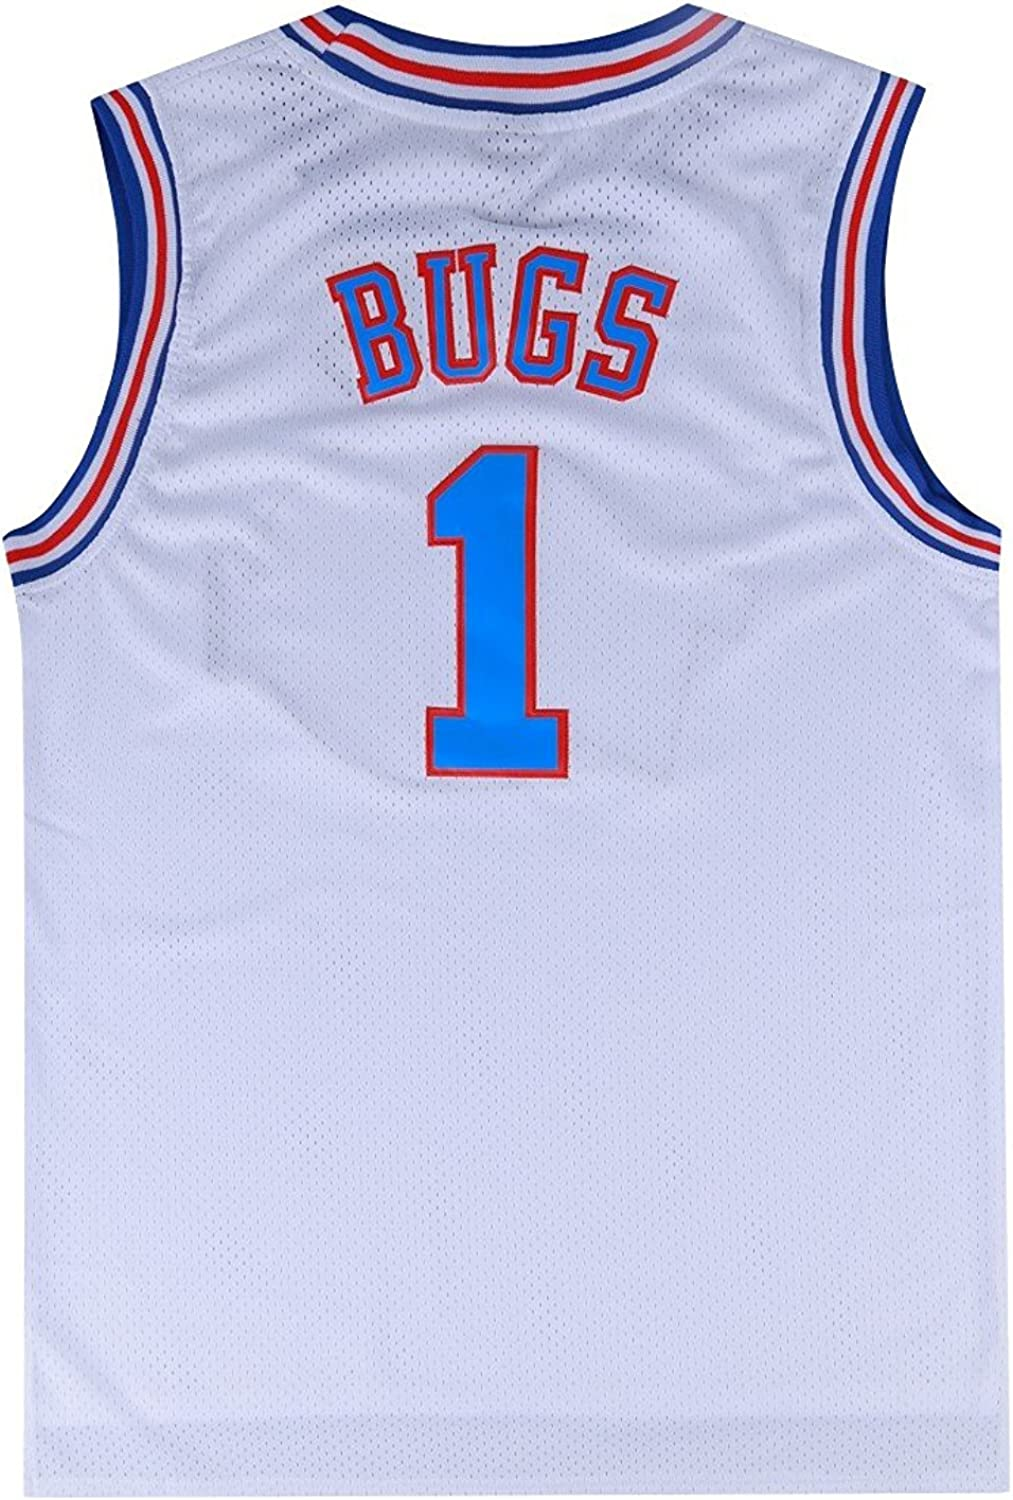 BOROLIN Mens Basketball Jersey Bugs #1 Space Jersey White/Black/Blue 90s Hiphop Party Clothing